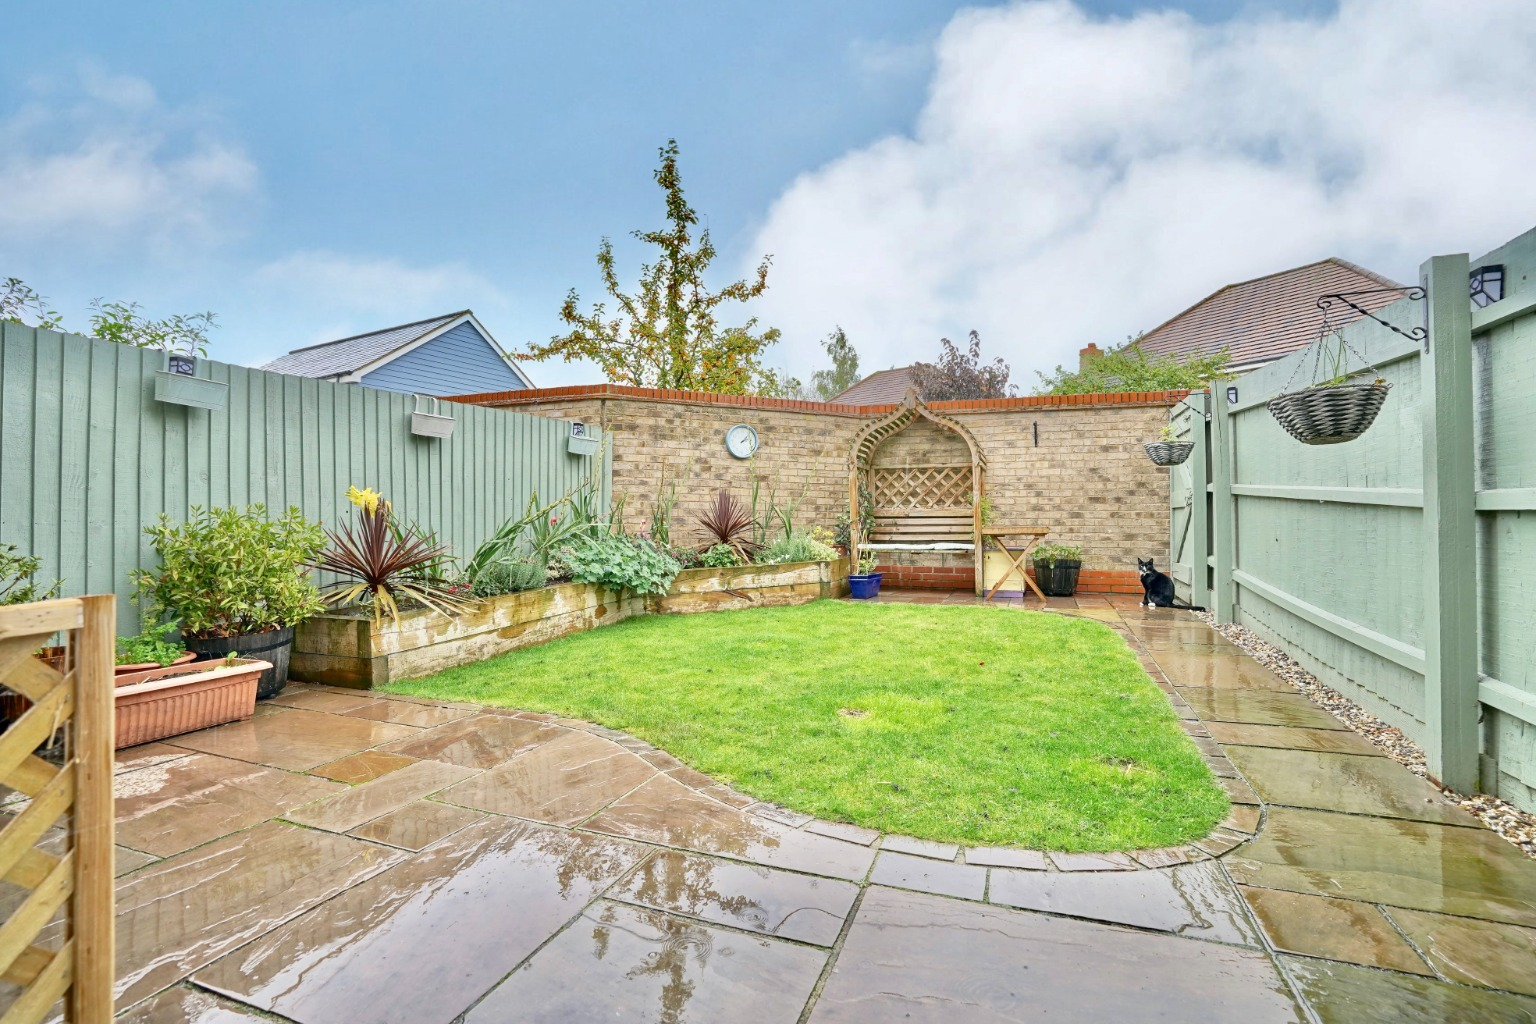 3 bed end of terrace house for sale in Stone Hill, Cambridgeshire 9